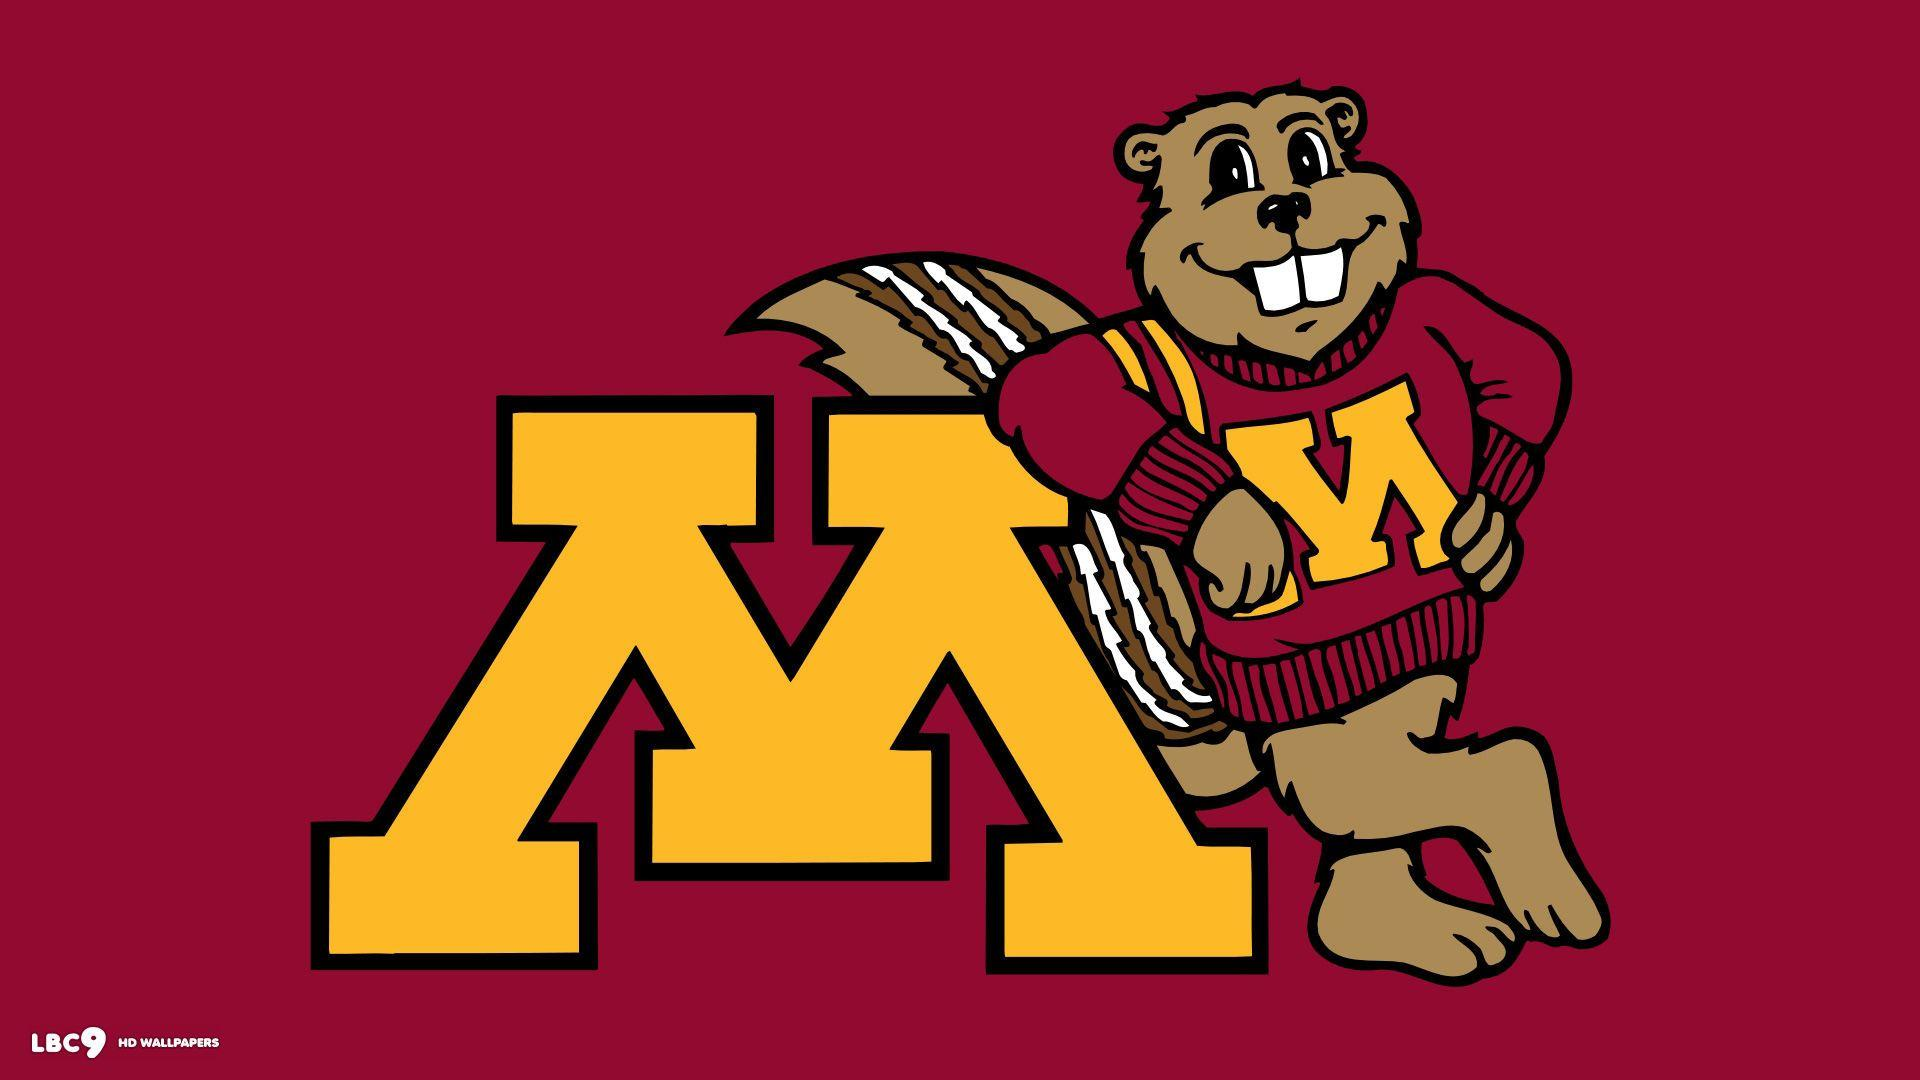 minnesota golden gophers wallpapers 1/3